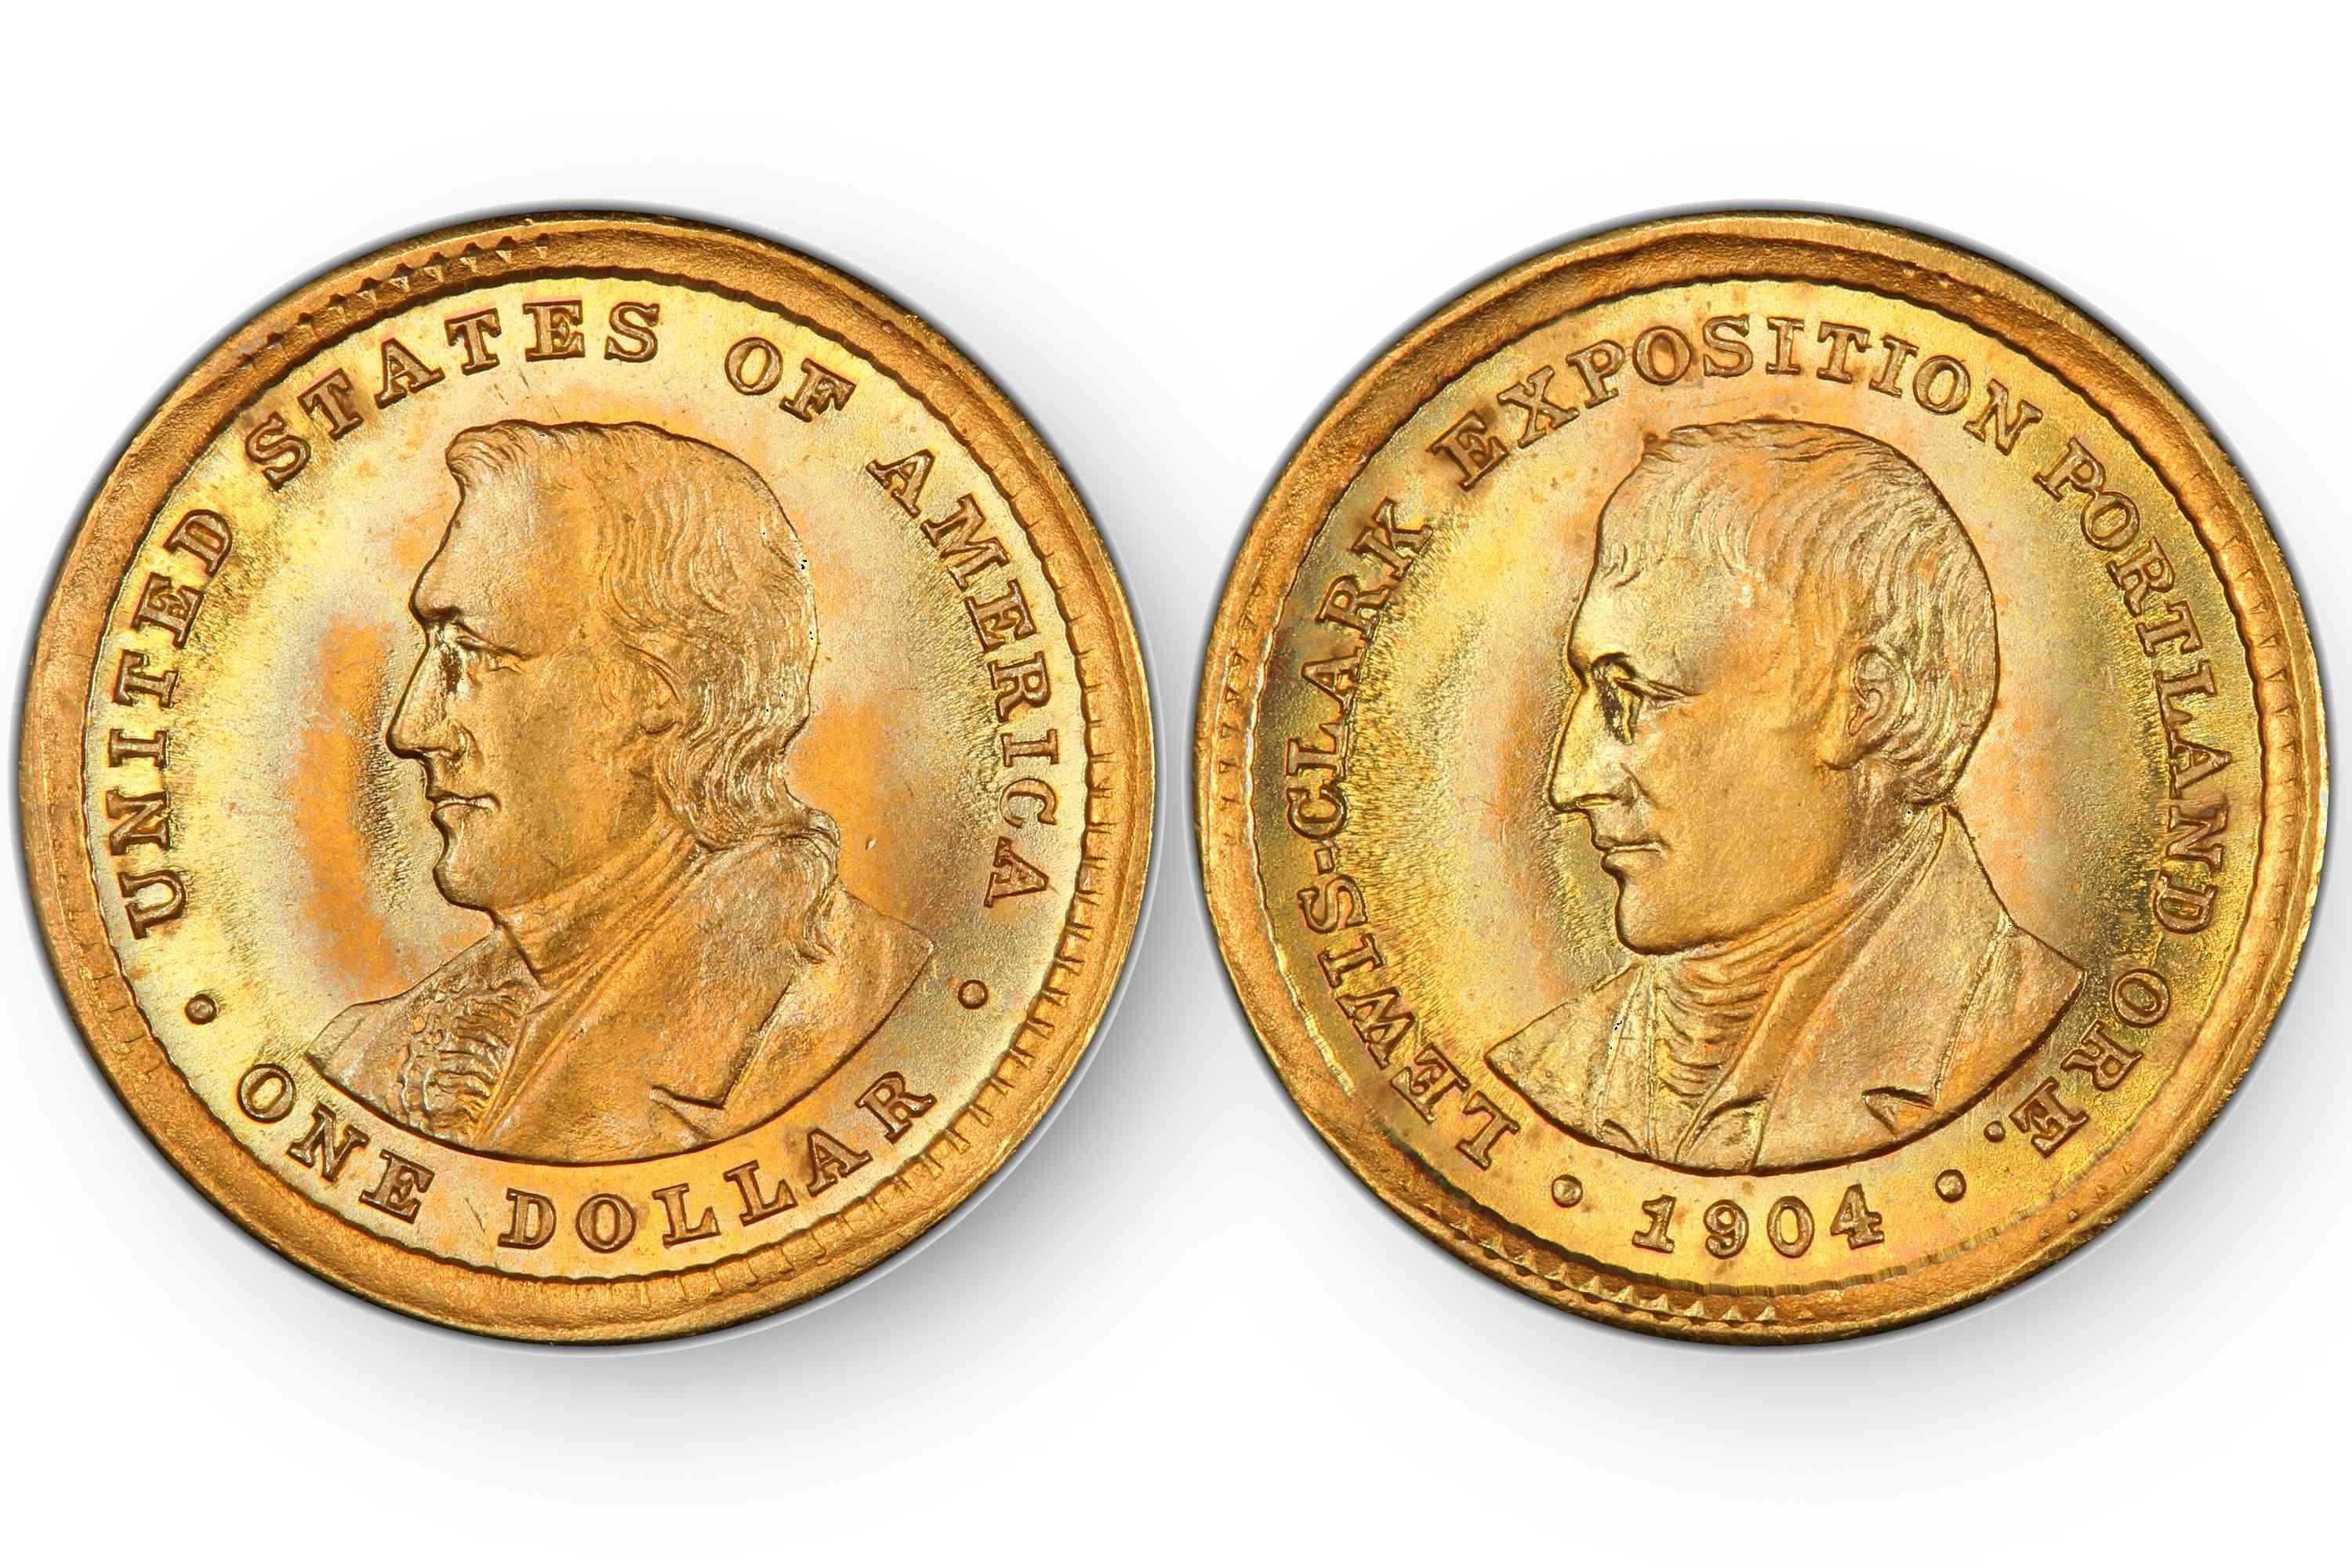 1904 Lewis And Clark Exposition Commemorative One Dollar Gold Coin.